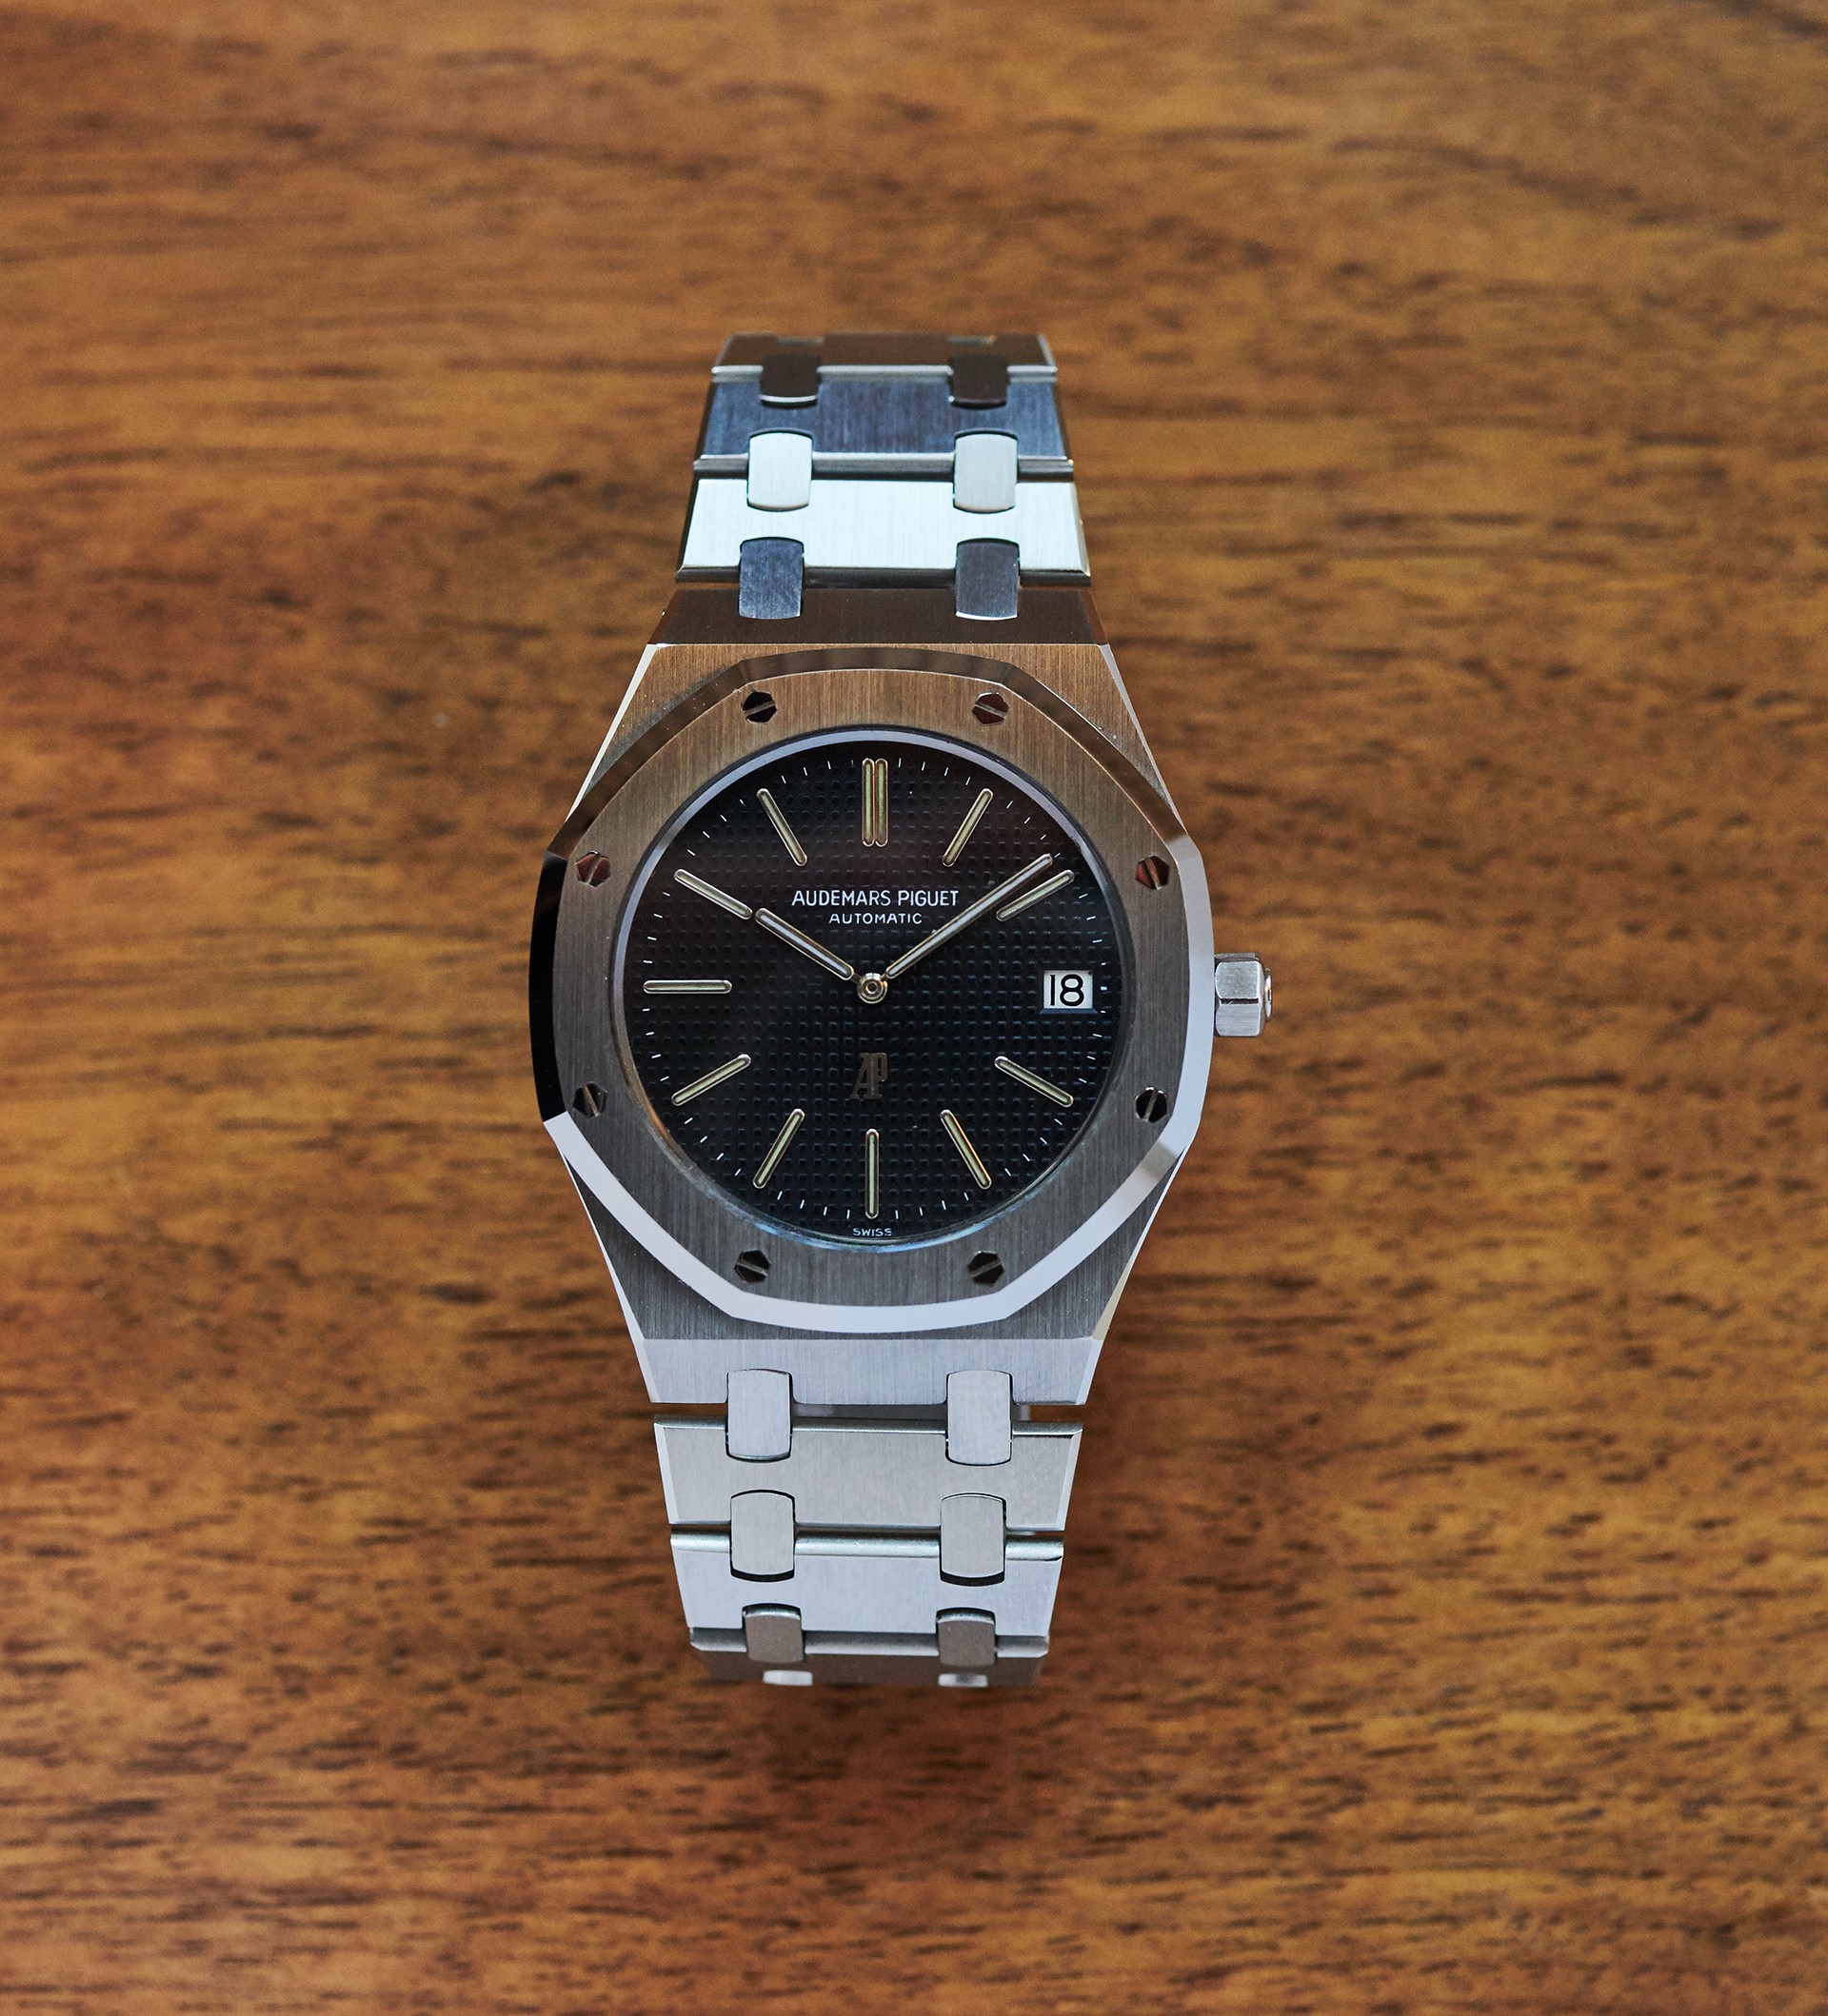 Audemars Piguet 5402st Royal Oak Jumbo